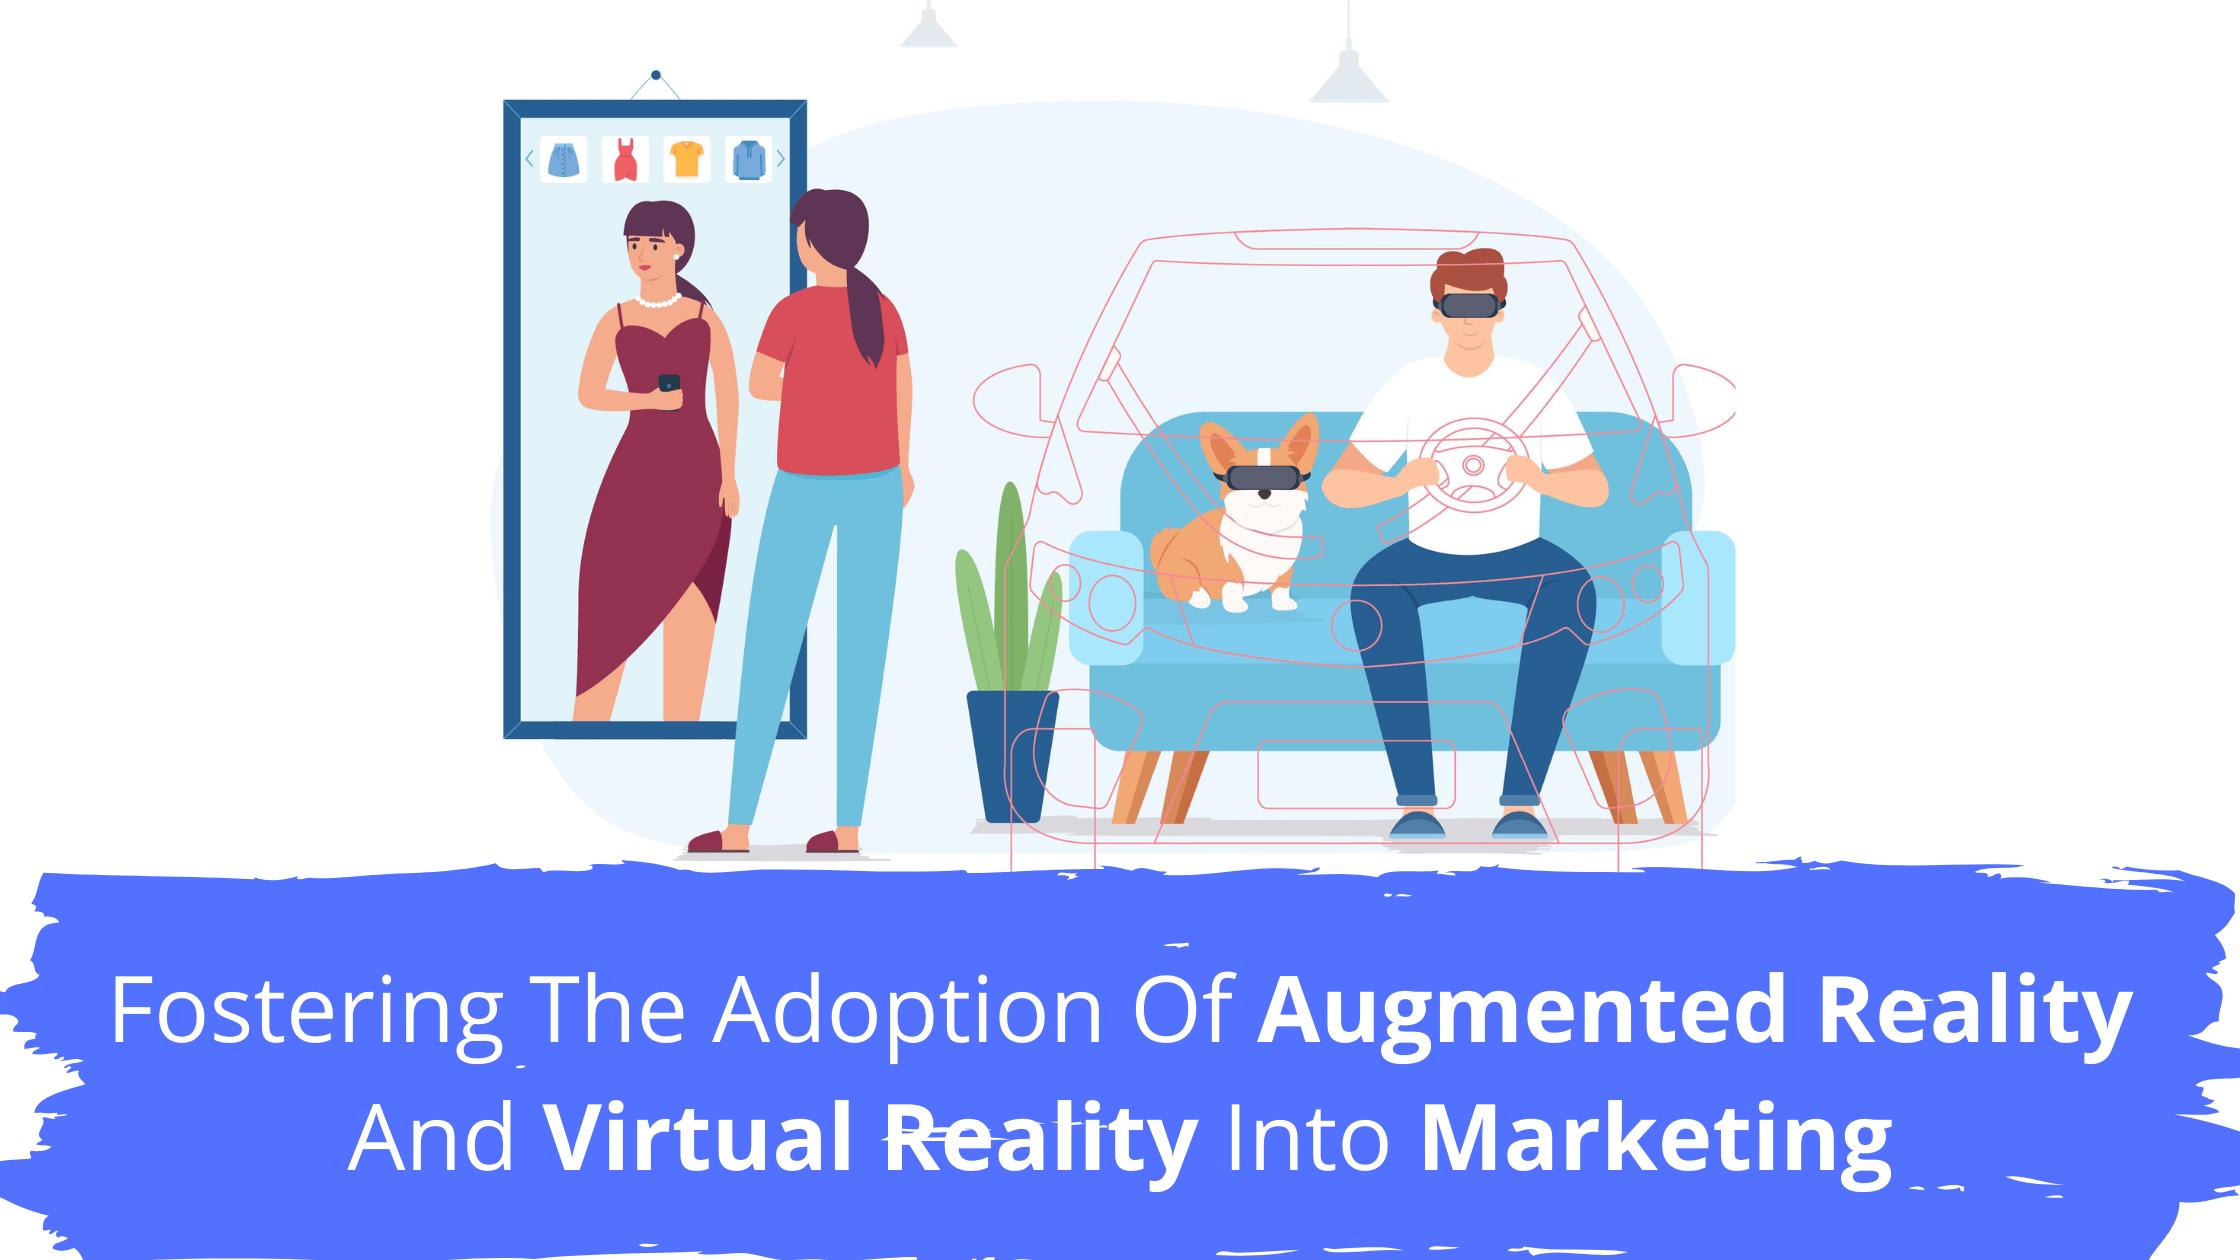 Augmented Reality And Virtual Reality Into Marketing